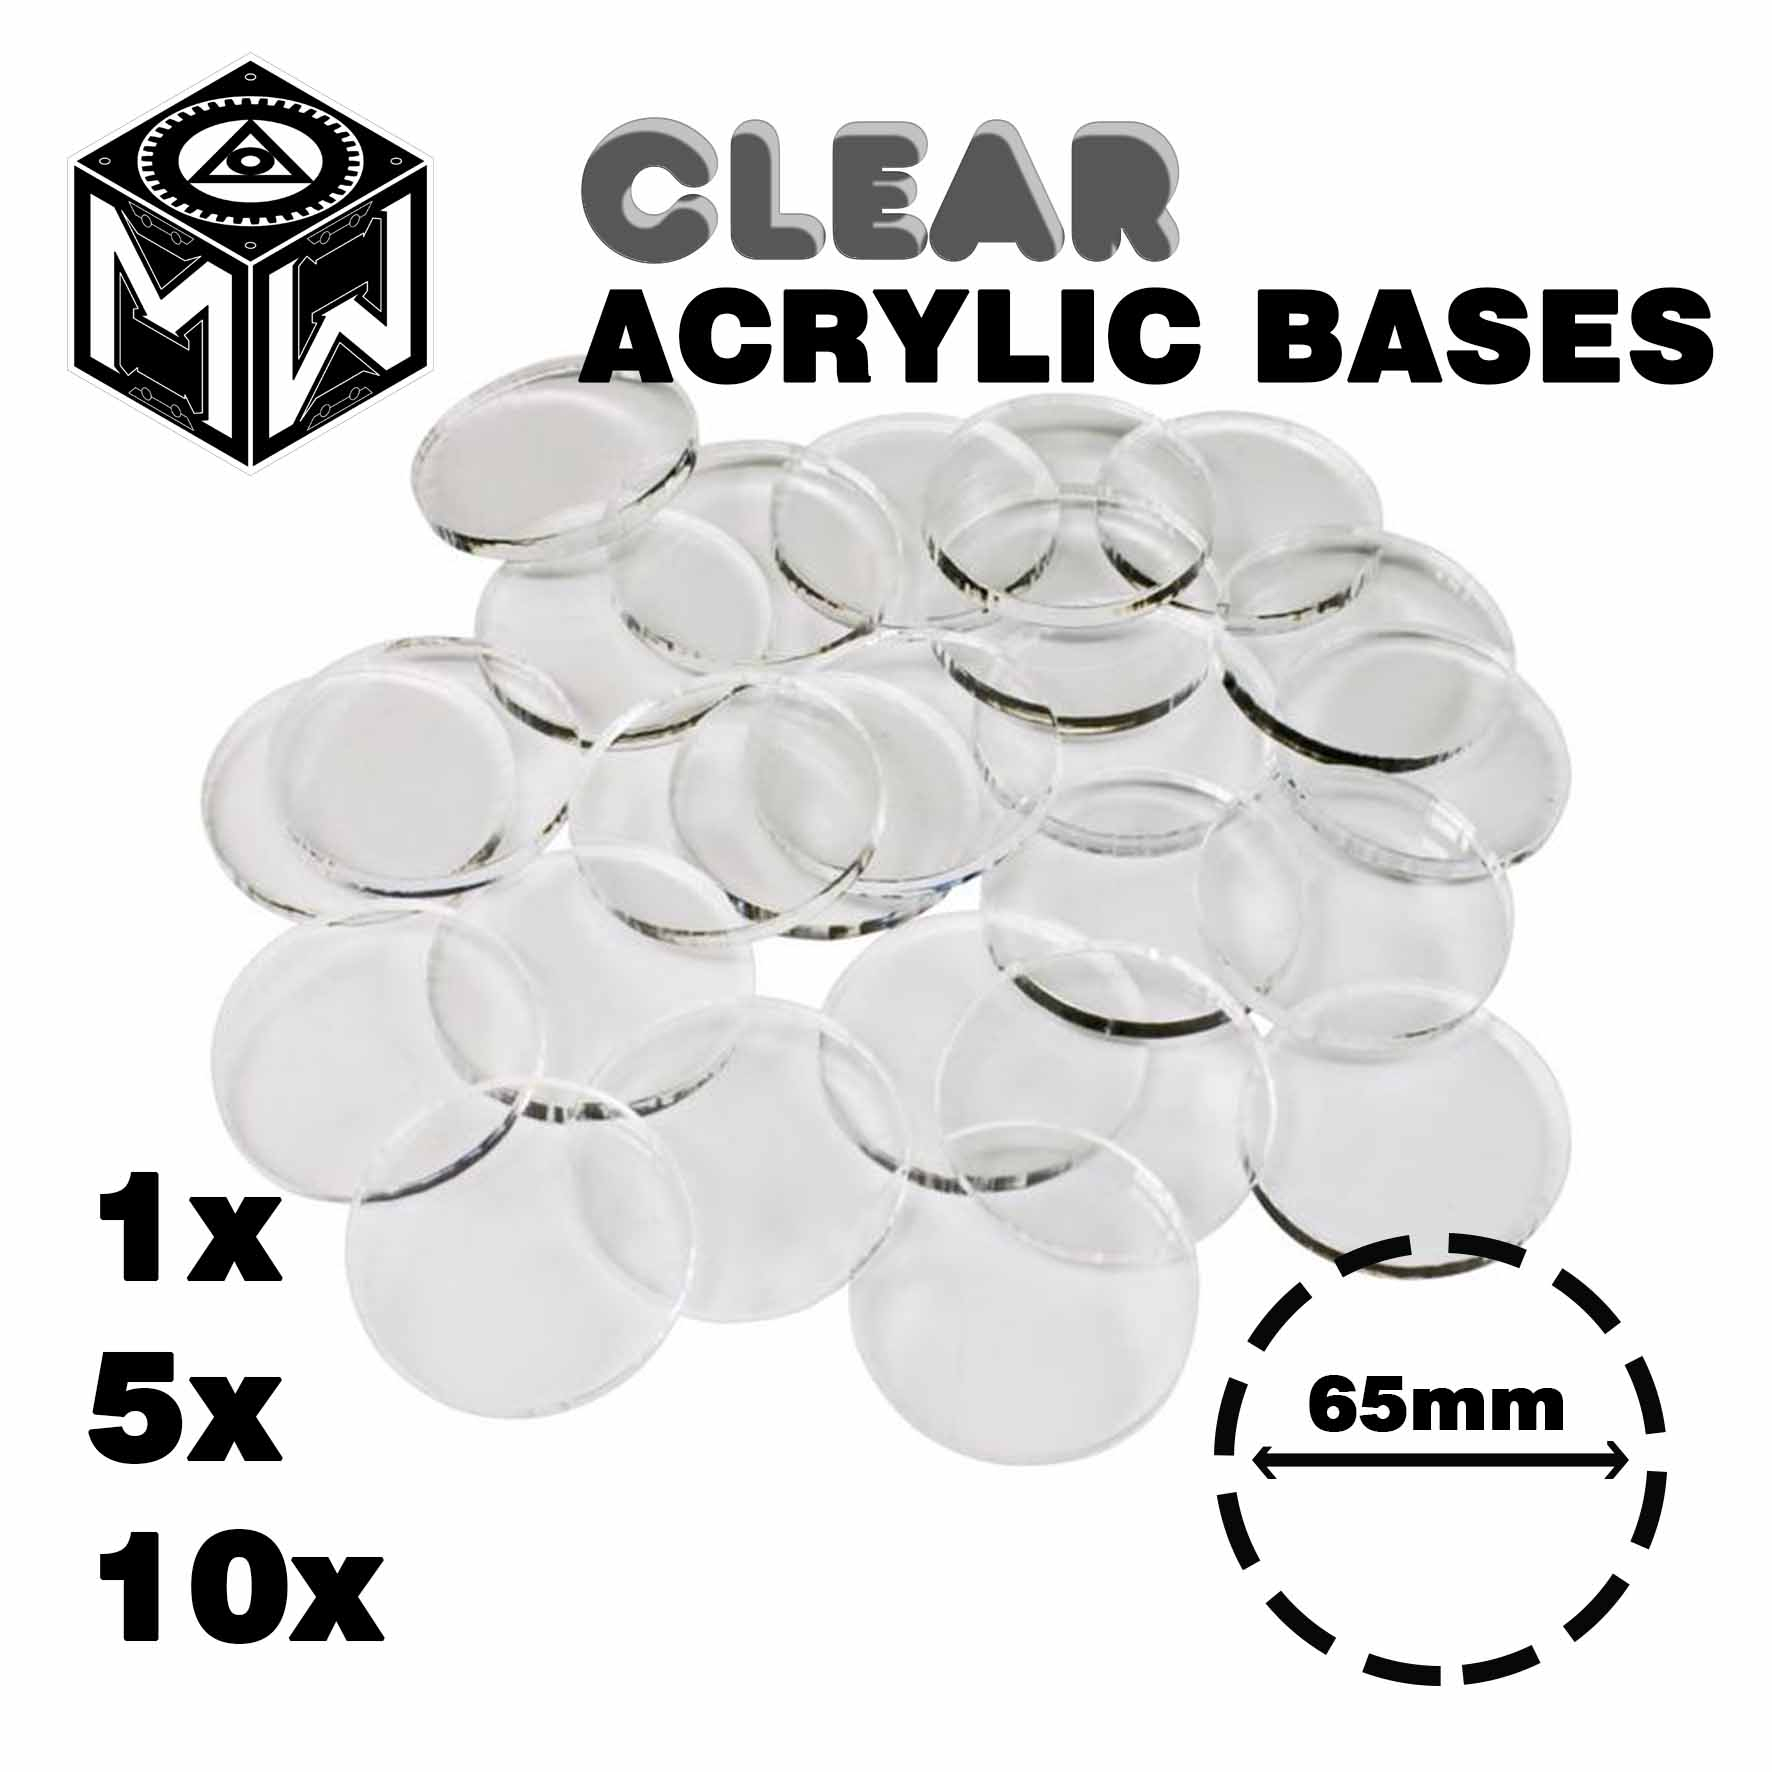 3mm Acrylic Clear Bases, Round 65mm